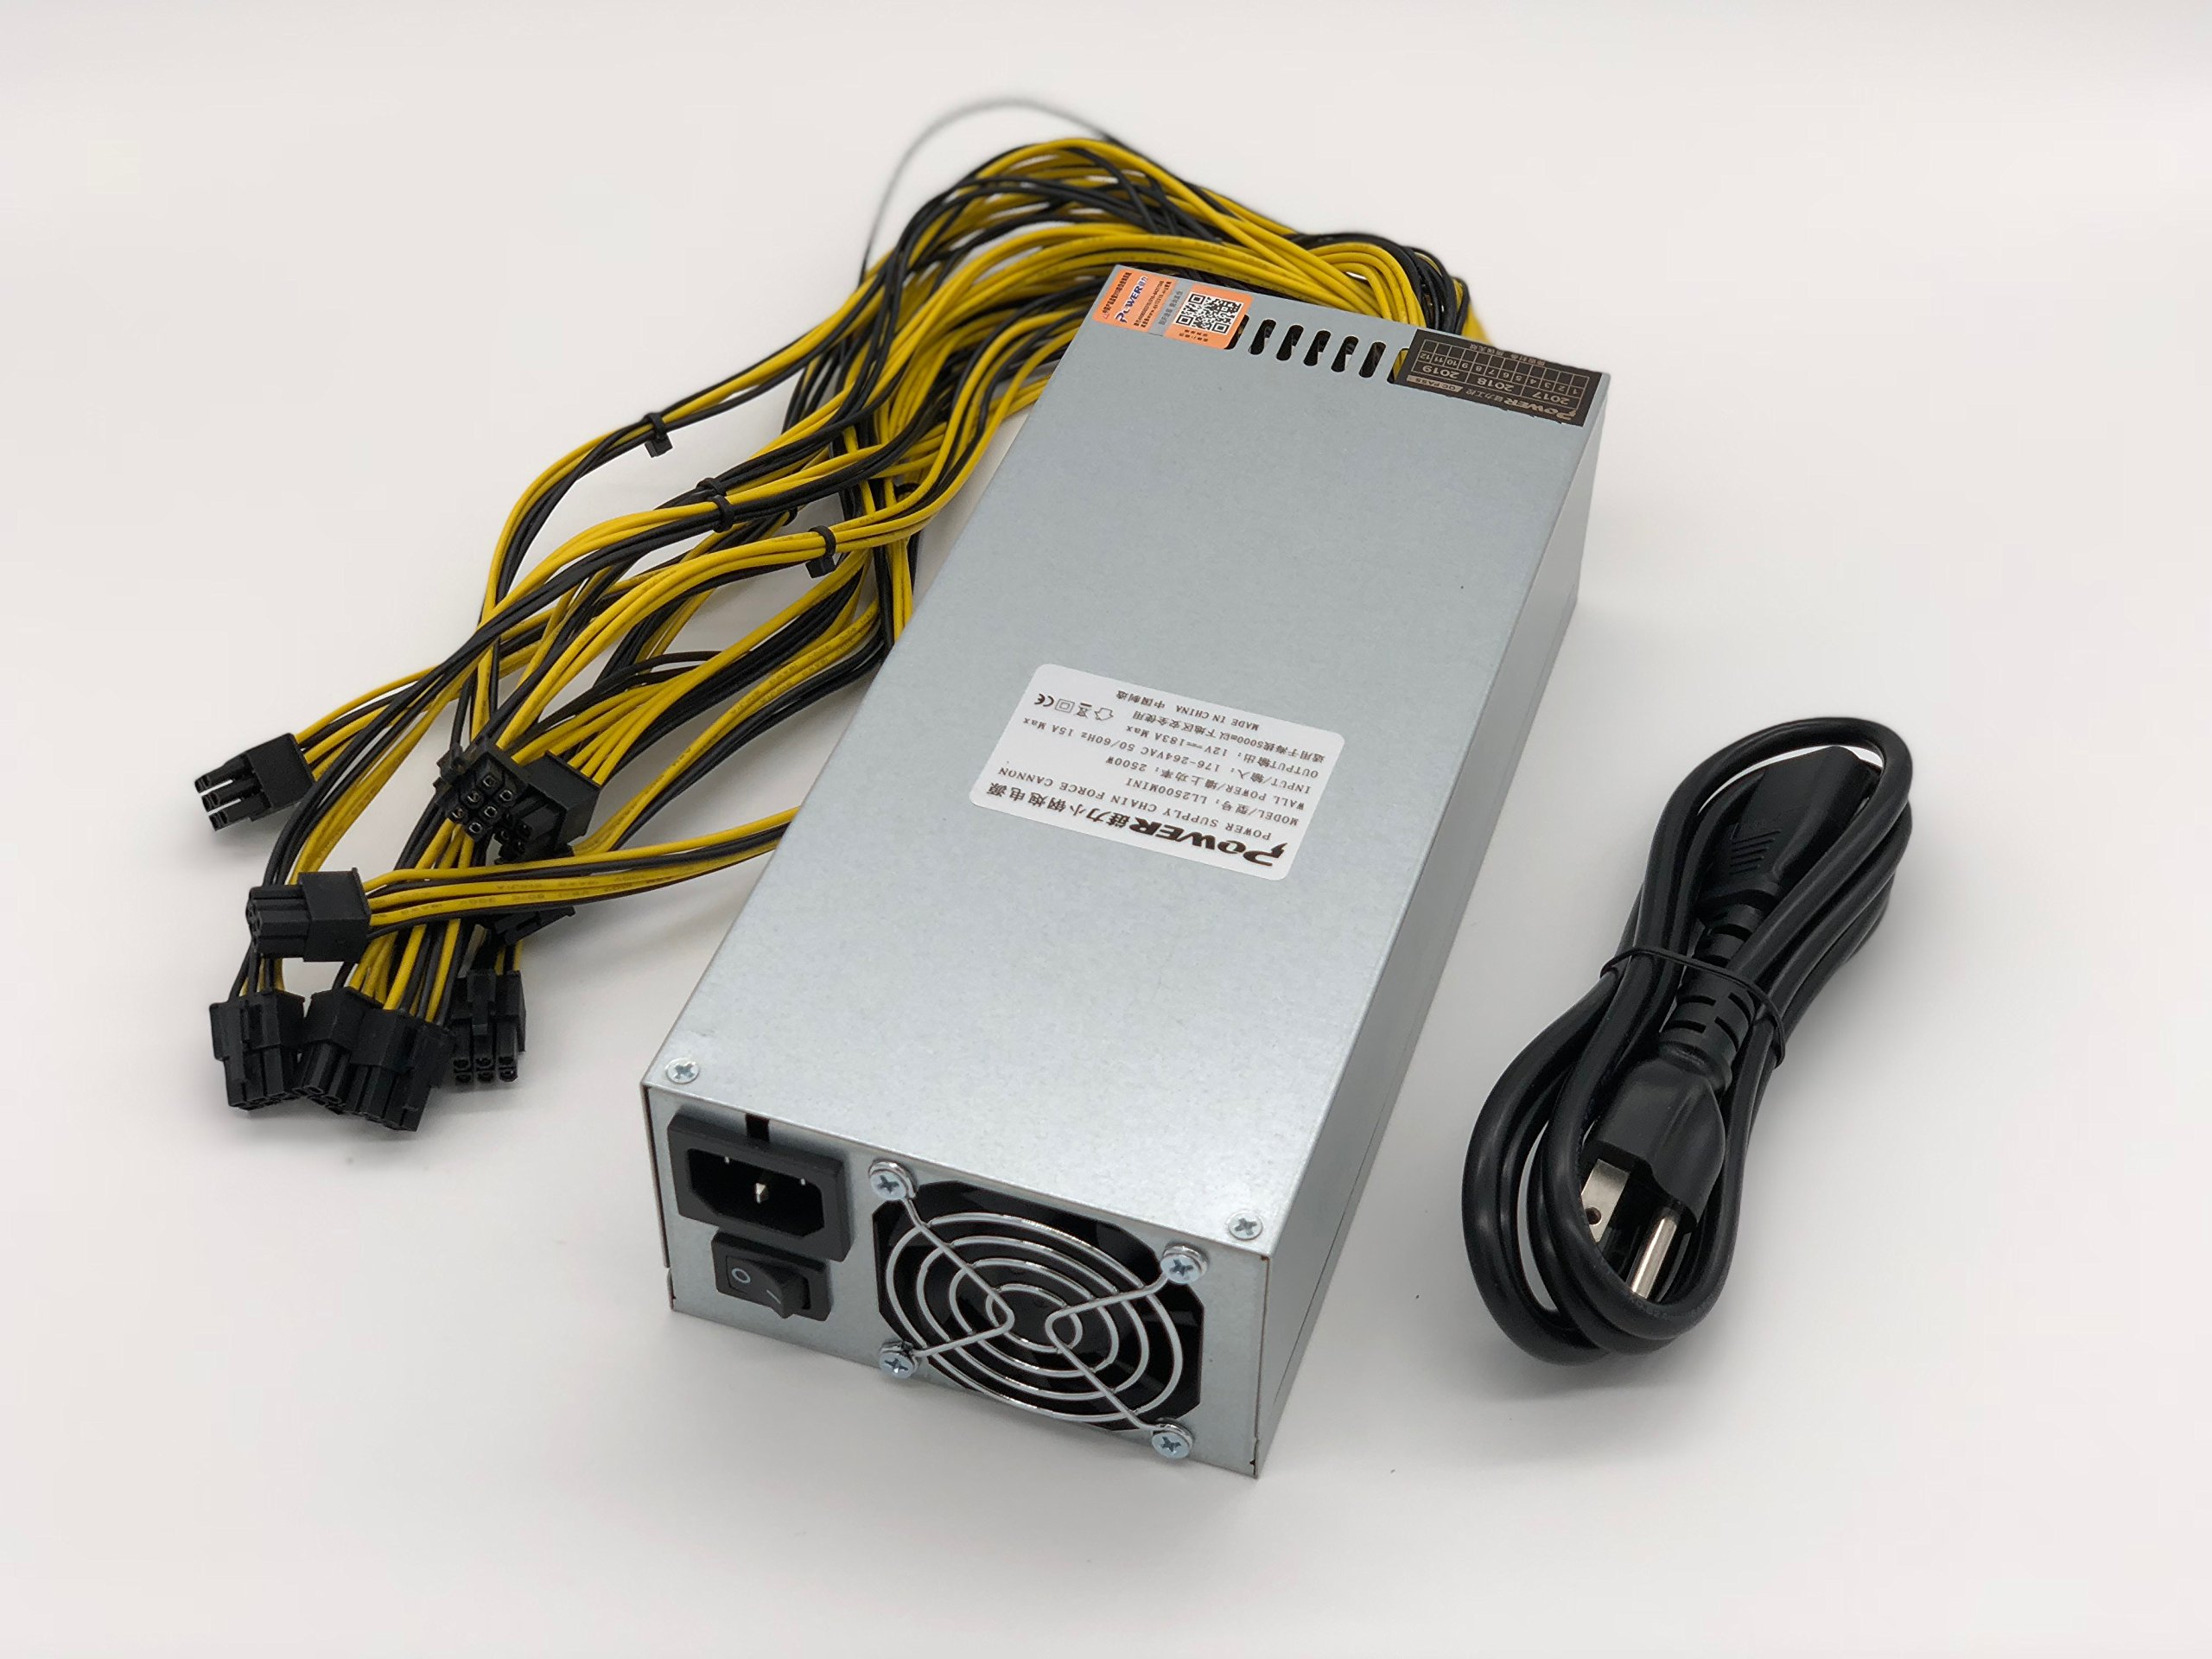 2500W Power Supply for Antminer S9 D3 A3 And L3